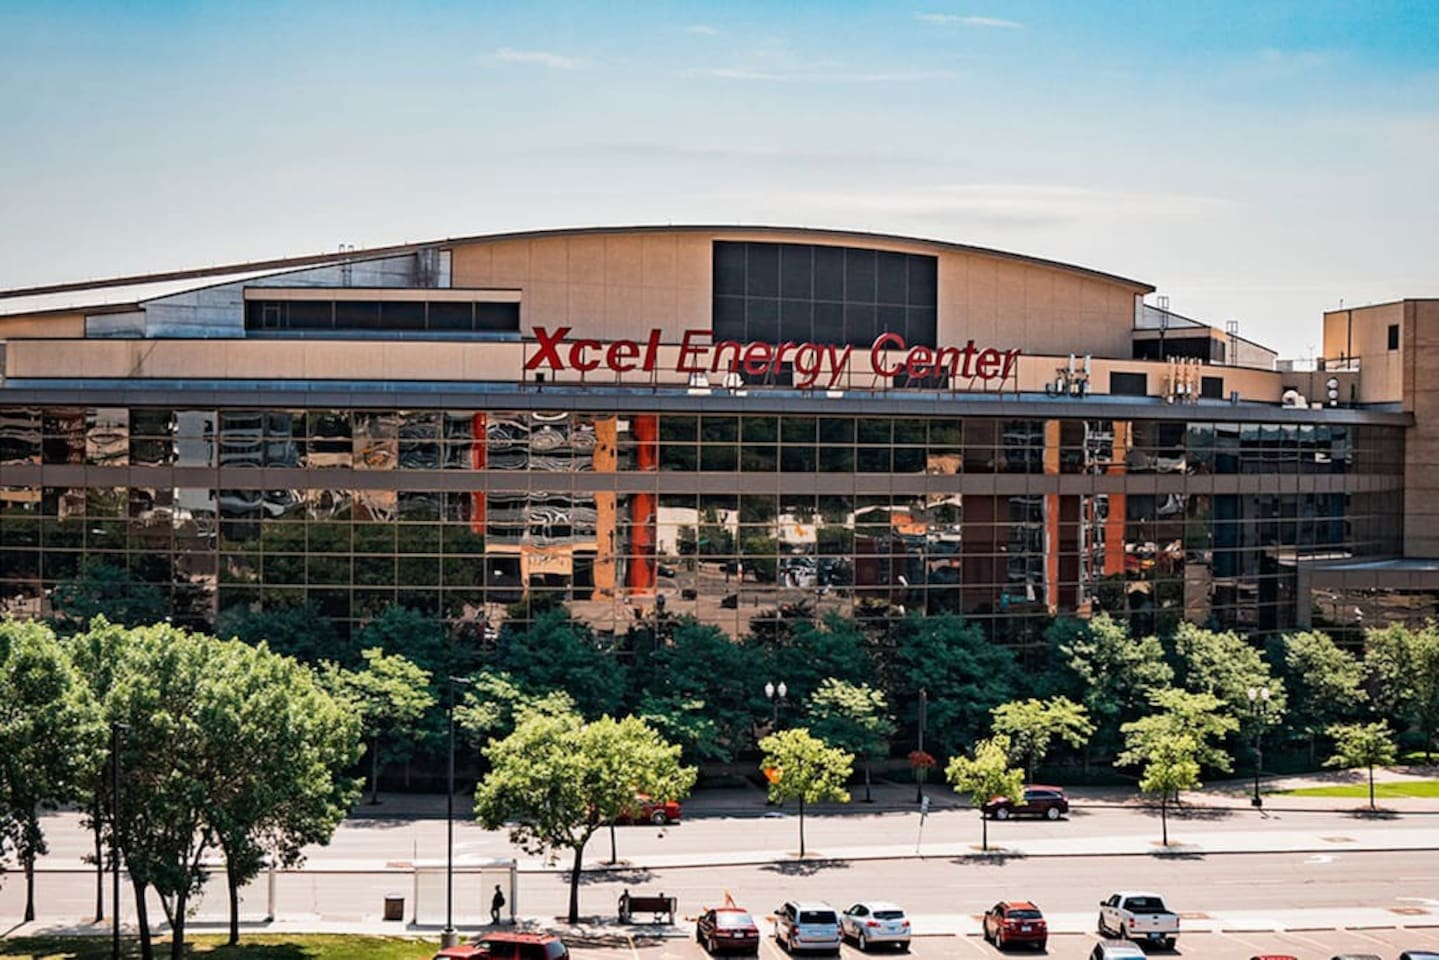 Just two blocks from the Xcel energy center